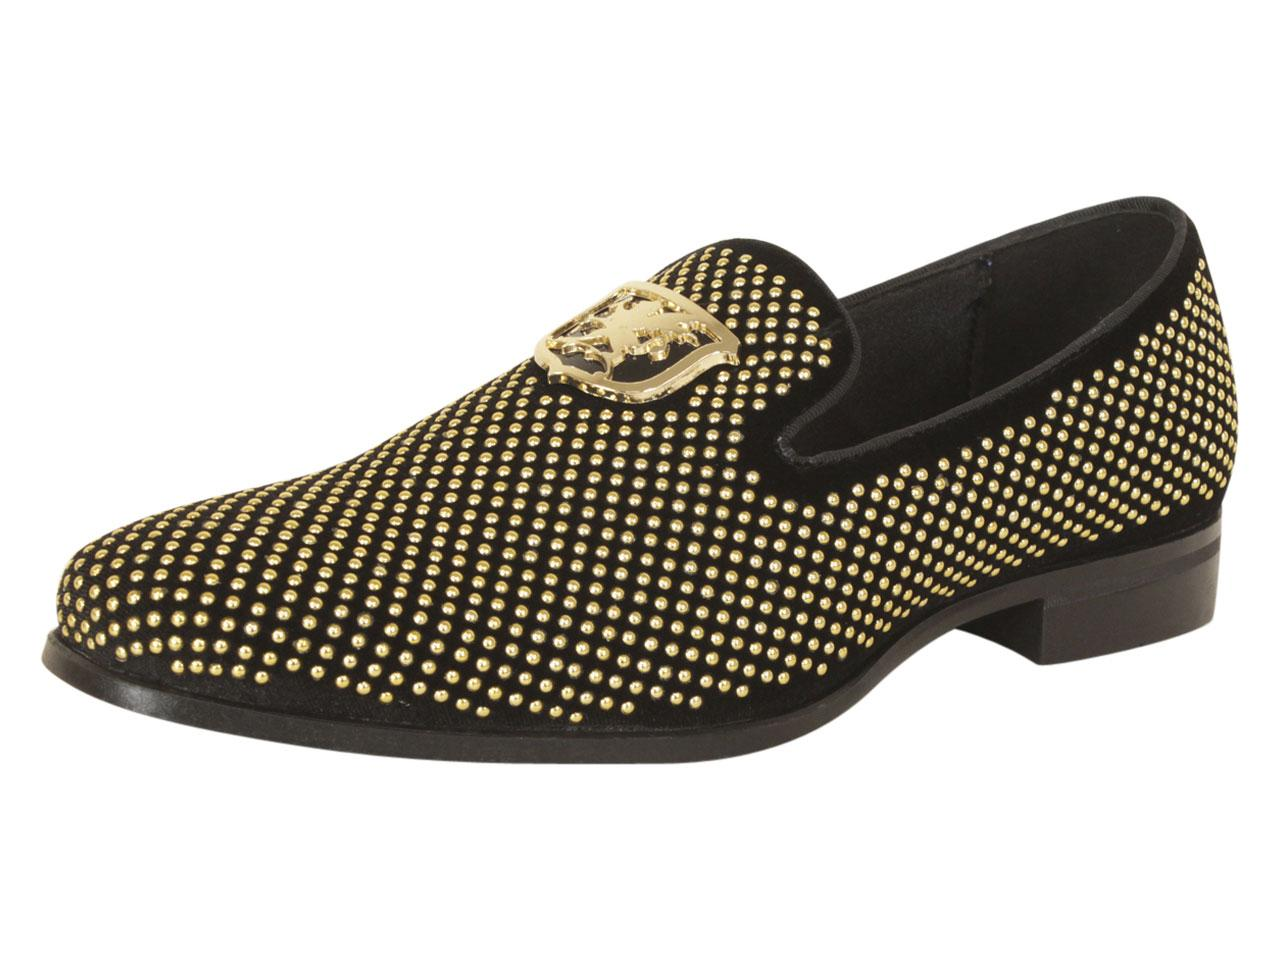 Image of - Black/Gold - 10 D(M) US